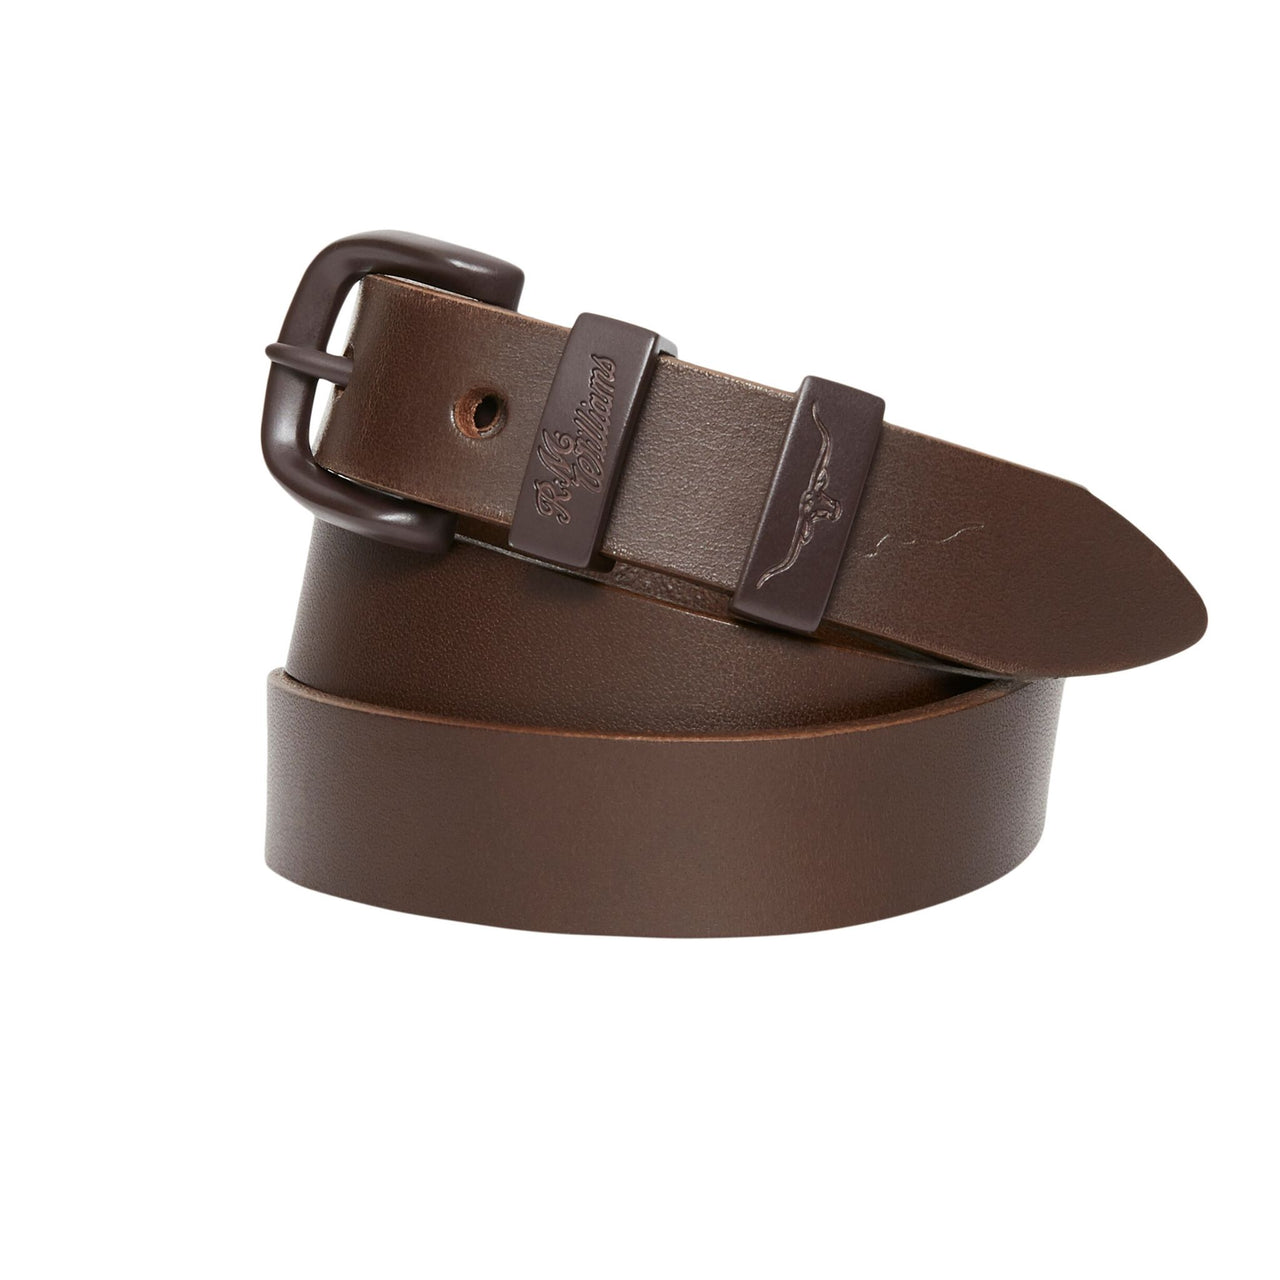 R-M-Williams-1-inch-Drover-Belt-Chocolate